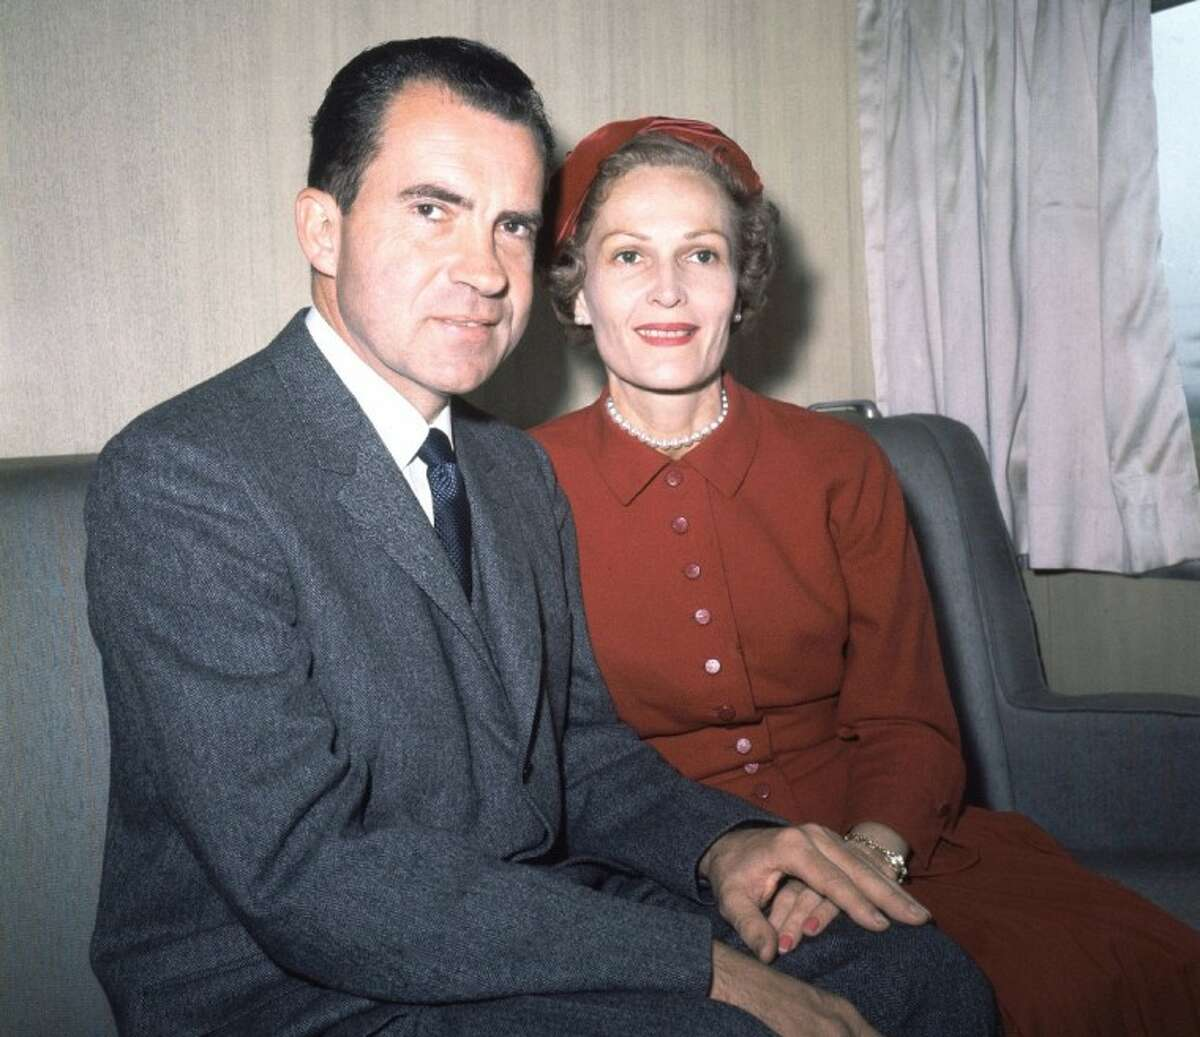 In this June 5, 1960 file photo, former President Richard Nixon, left, and his wife Pat pose for photos while campaigning at Rockefeller Center in New York. Six love letters between the 37th president and his wife will go on display Friday as part of an exhibit at the Richard Nixon Presidential Library and Museum.